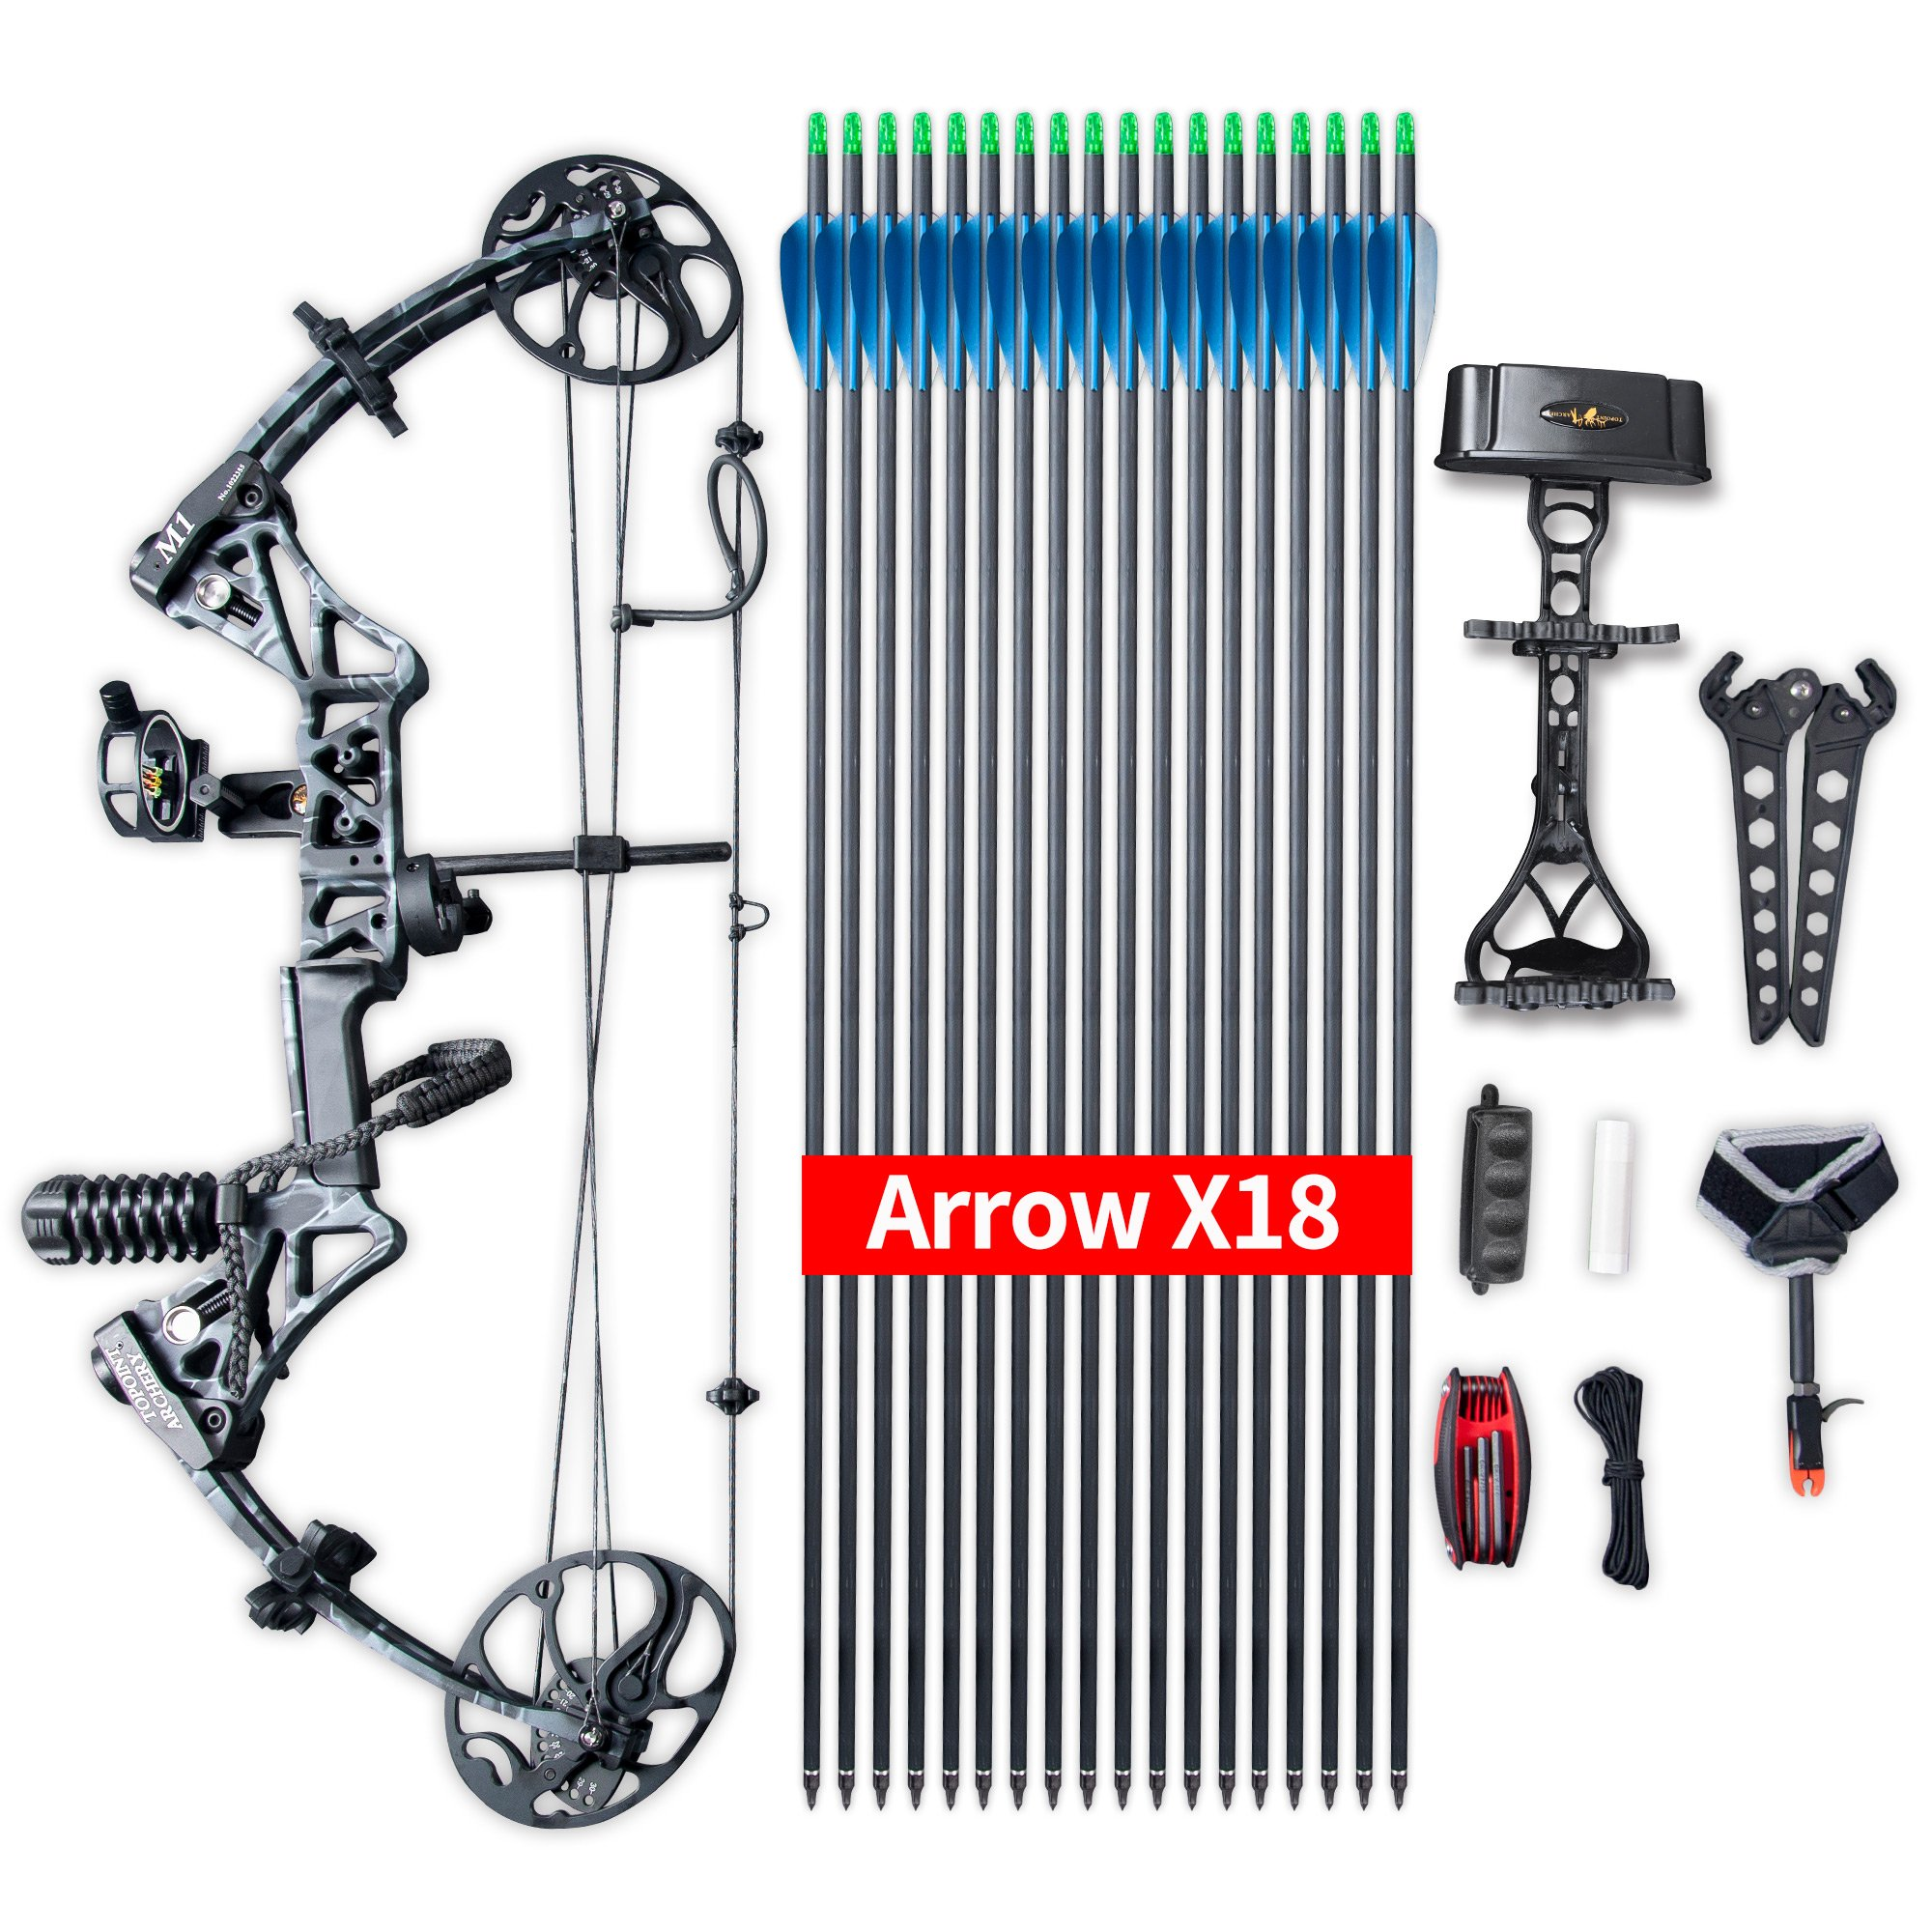 """Compound Bow Ship from USA Warehouse,Topoint Archery Package,M1,19""""-30"""" Draw Length,19-70Lbs Draw Weight,320fps IBO Limbs Made in USA (Black camo)"""